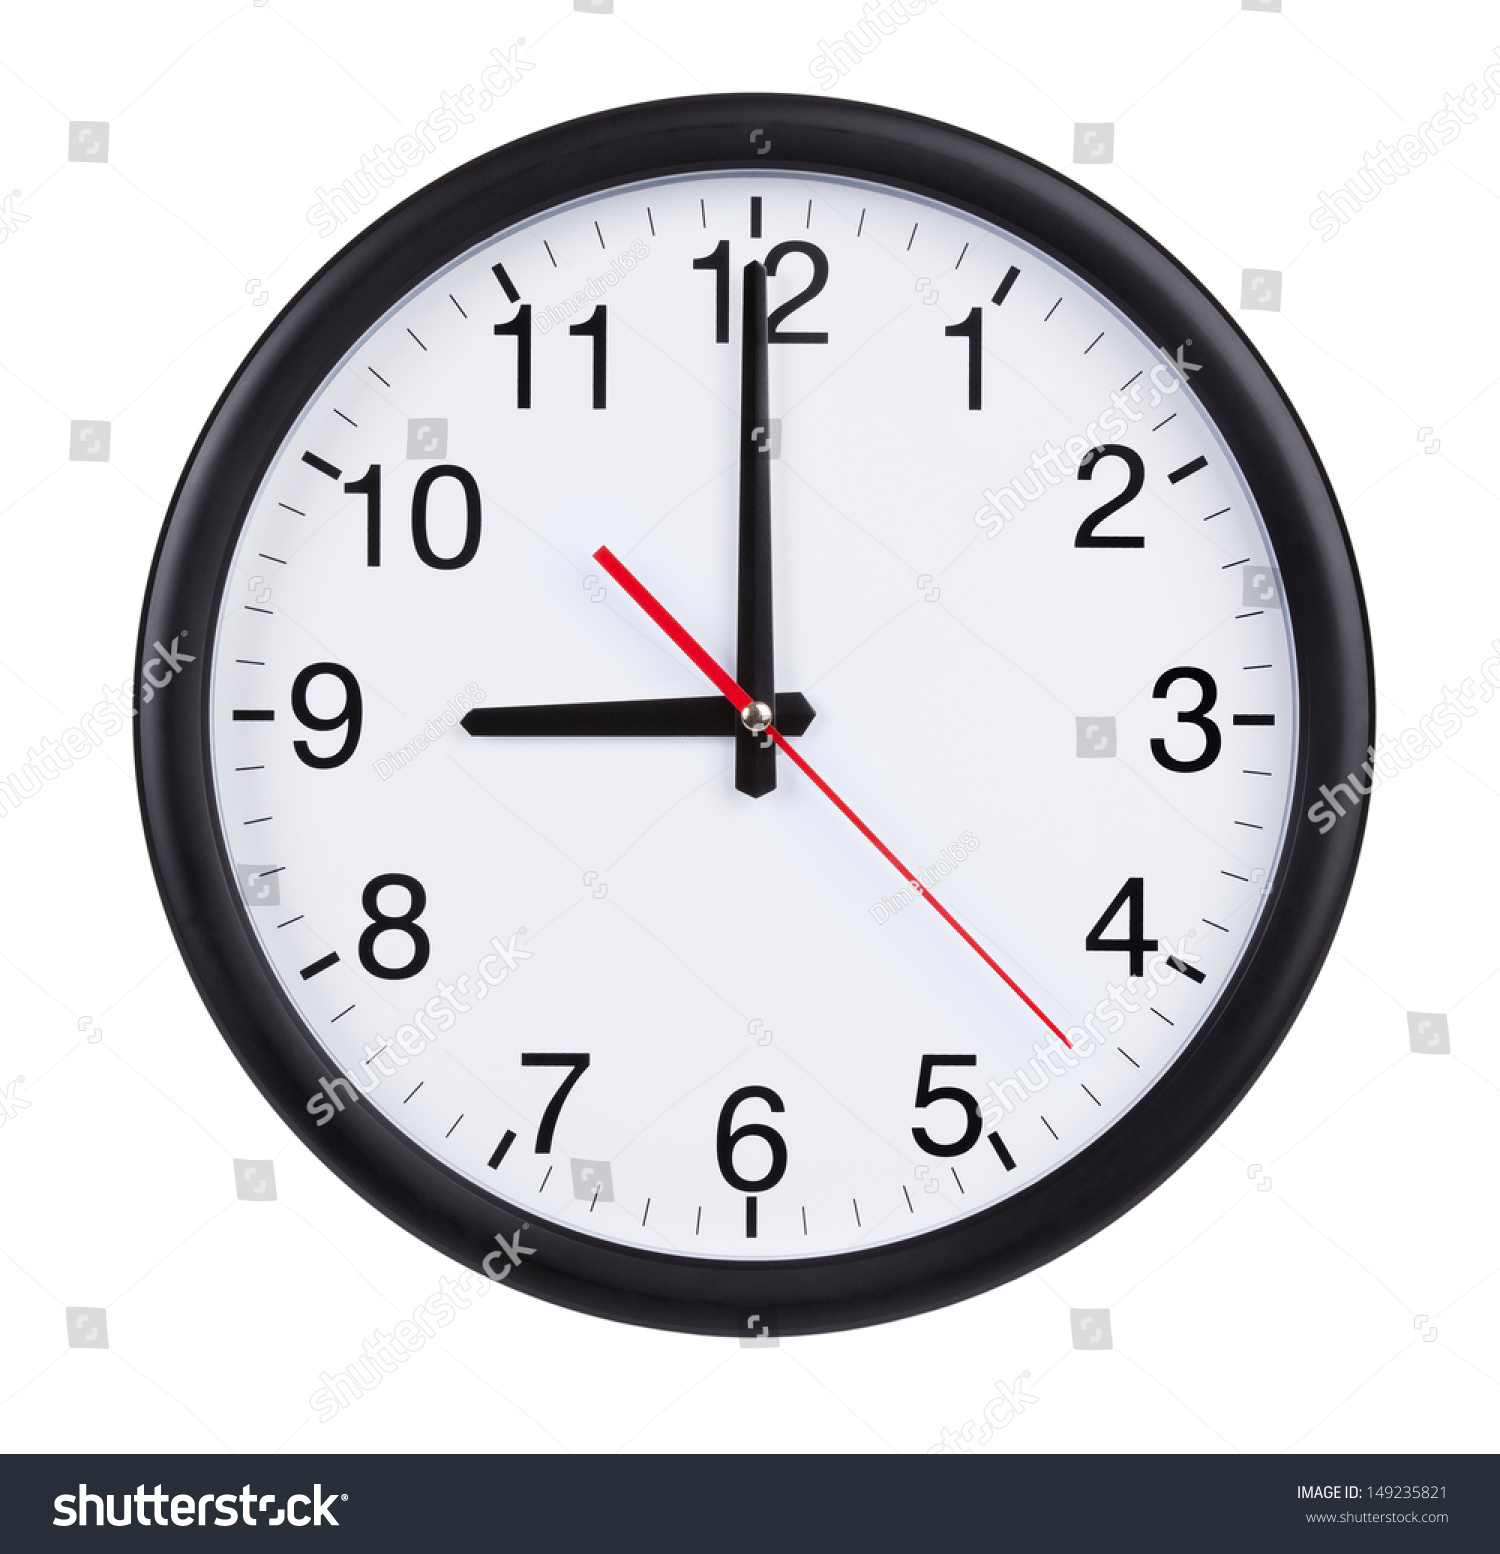 Nine Hours On Round Clock Face Stock Photo 149235821